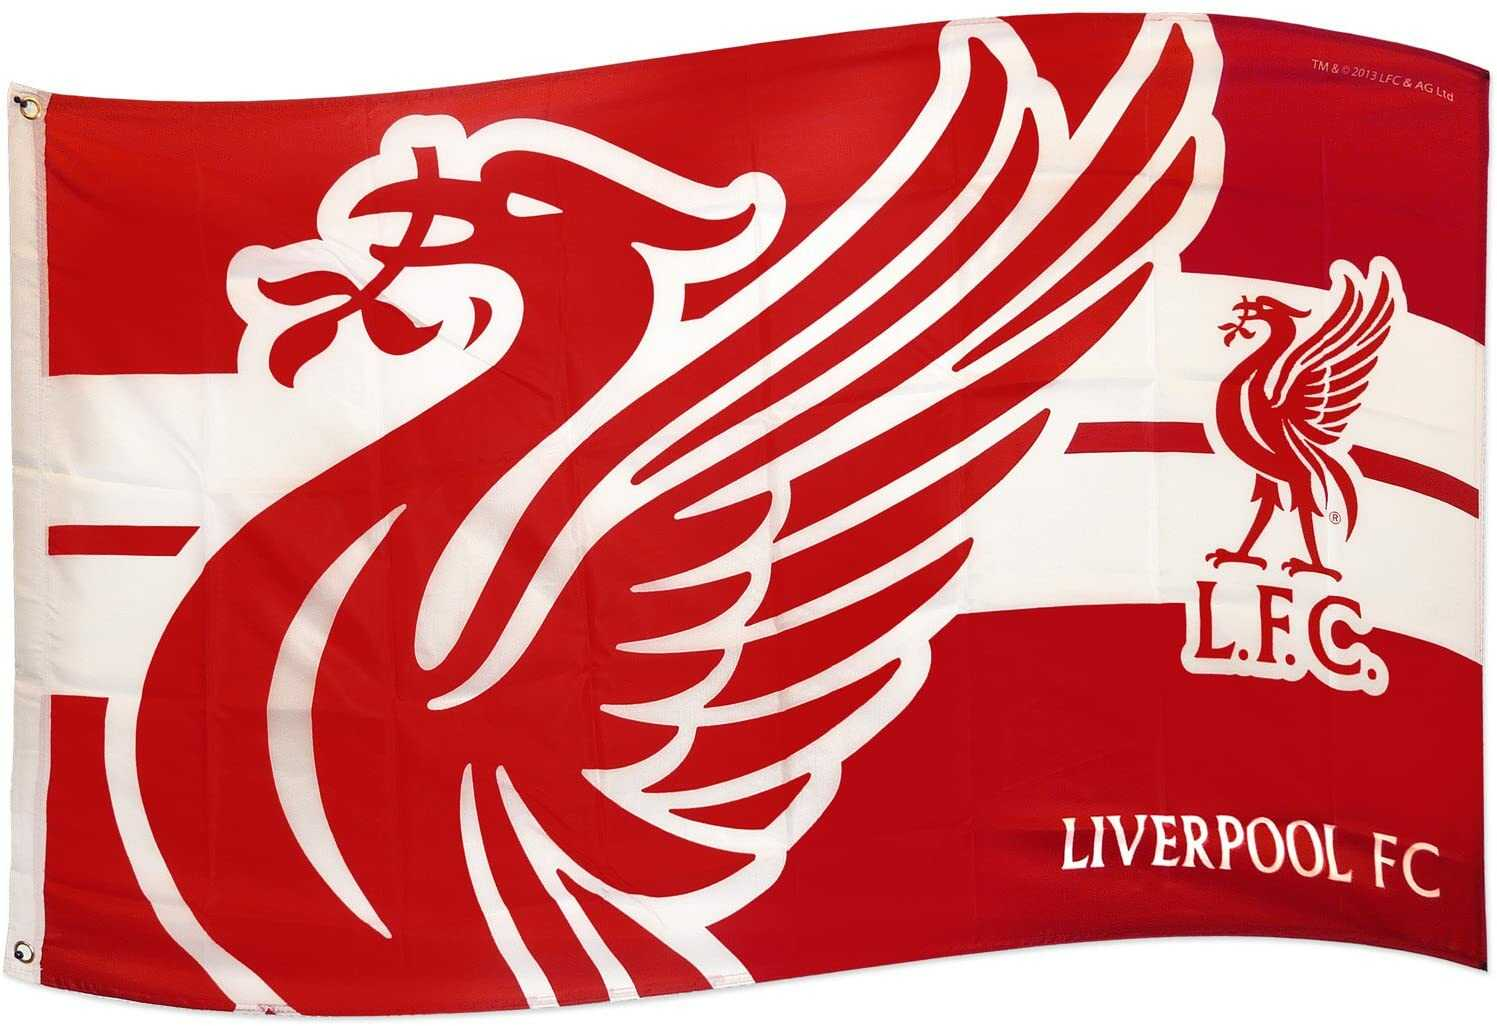 Liverpool - The Reds